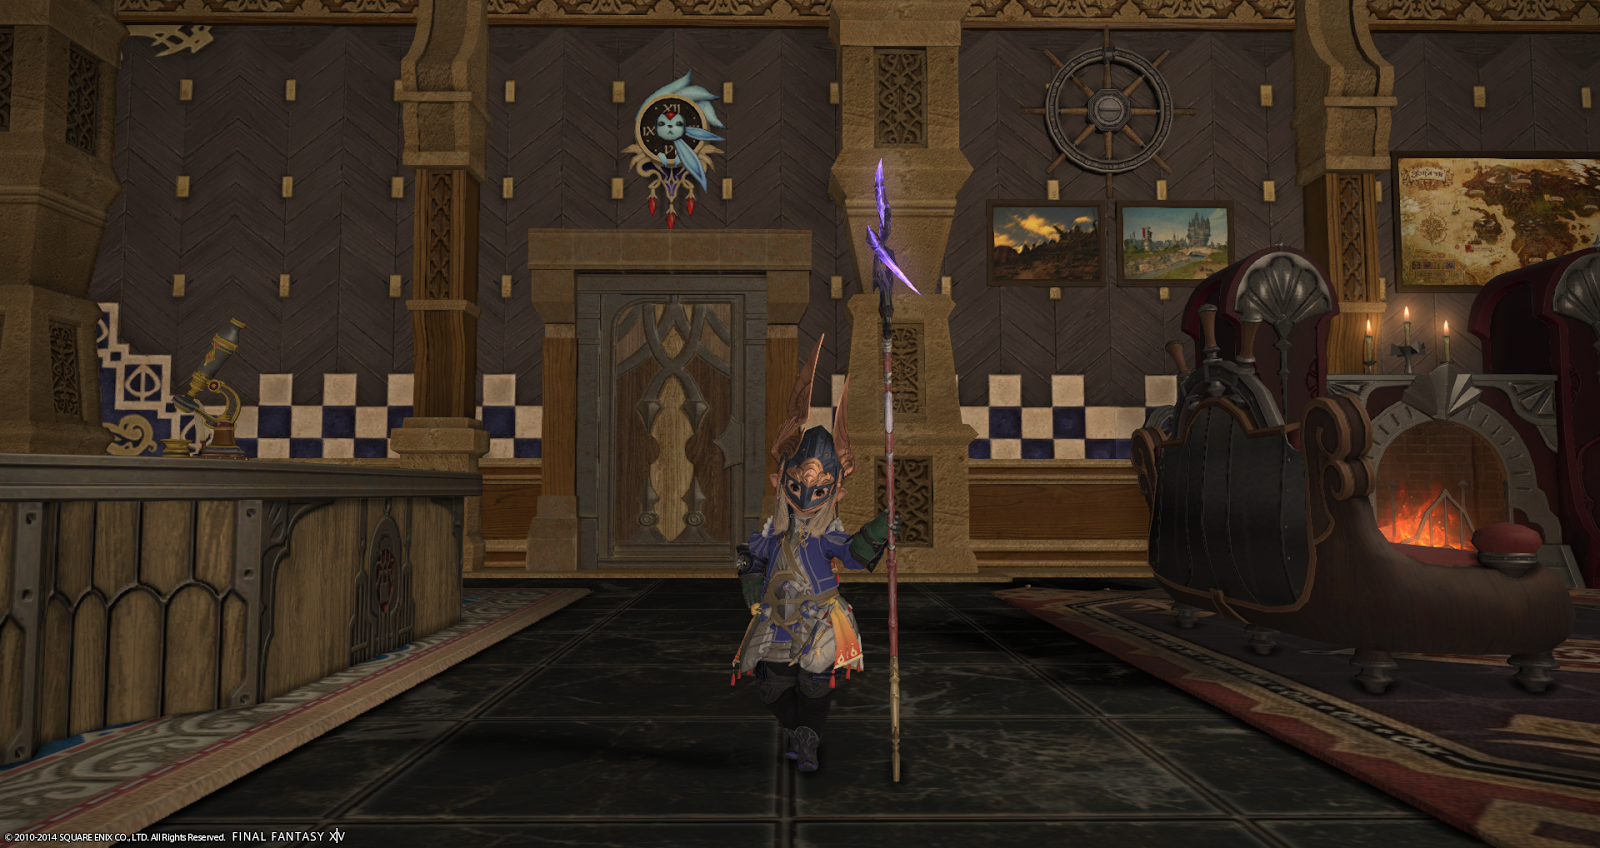 Lym [FF14] There are now new idle stances for when you've